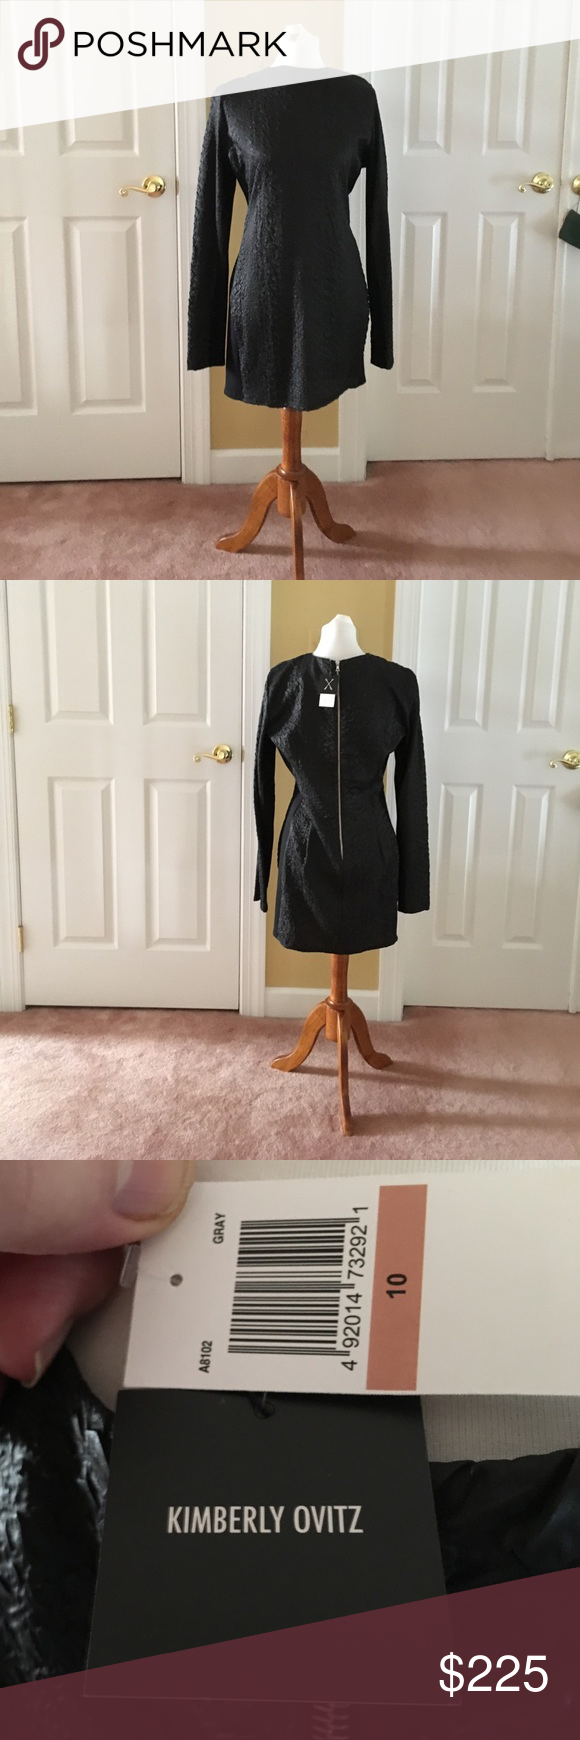 Neiman Marcus Exclusive! Gorgeous Color Block Black Cocktail Dress. Pictures can't explain the exquisite material.  Brand new dress with tags. Never worn. Neiman Marcus Dresses Midi